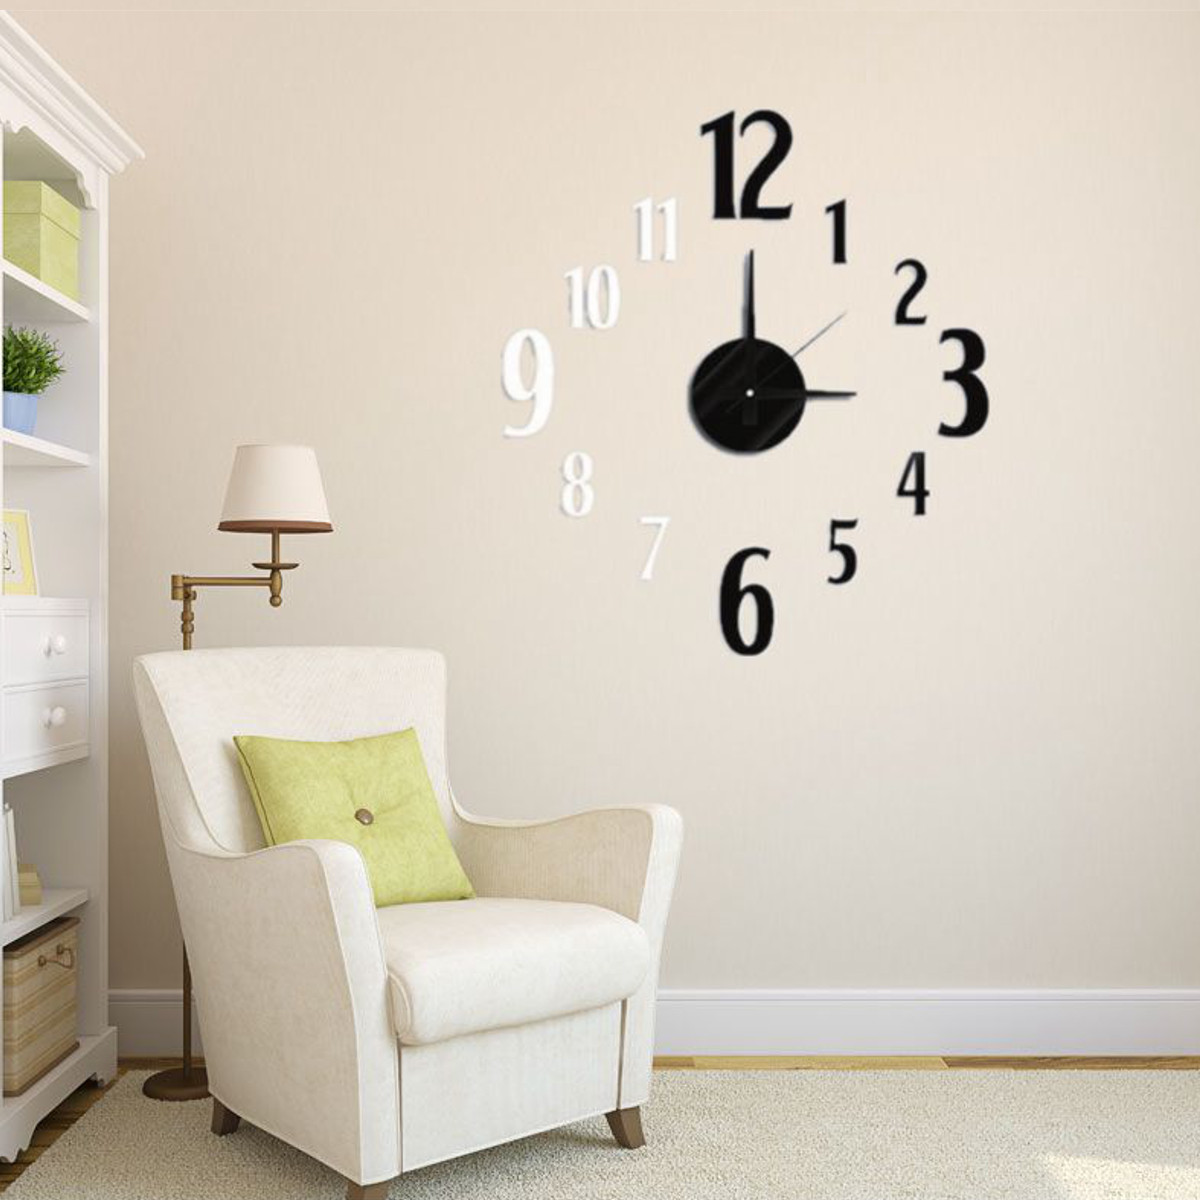 3d horloge murale pendule diy montre autocollant sticker art deco maison salon ebay. Black Bedroom Furniture Sets. Home Design Ideas